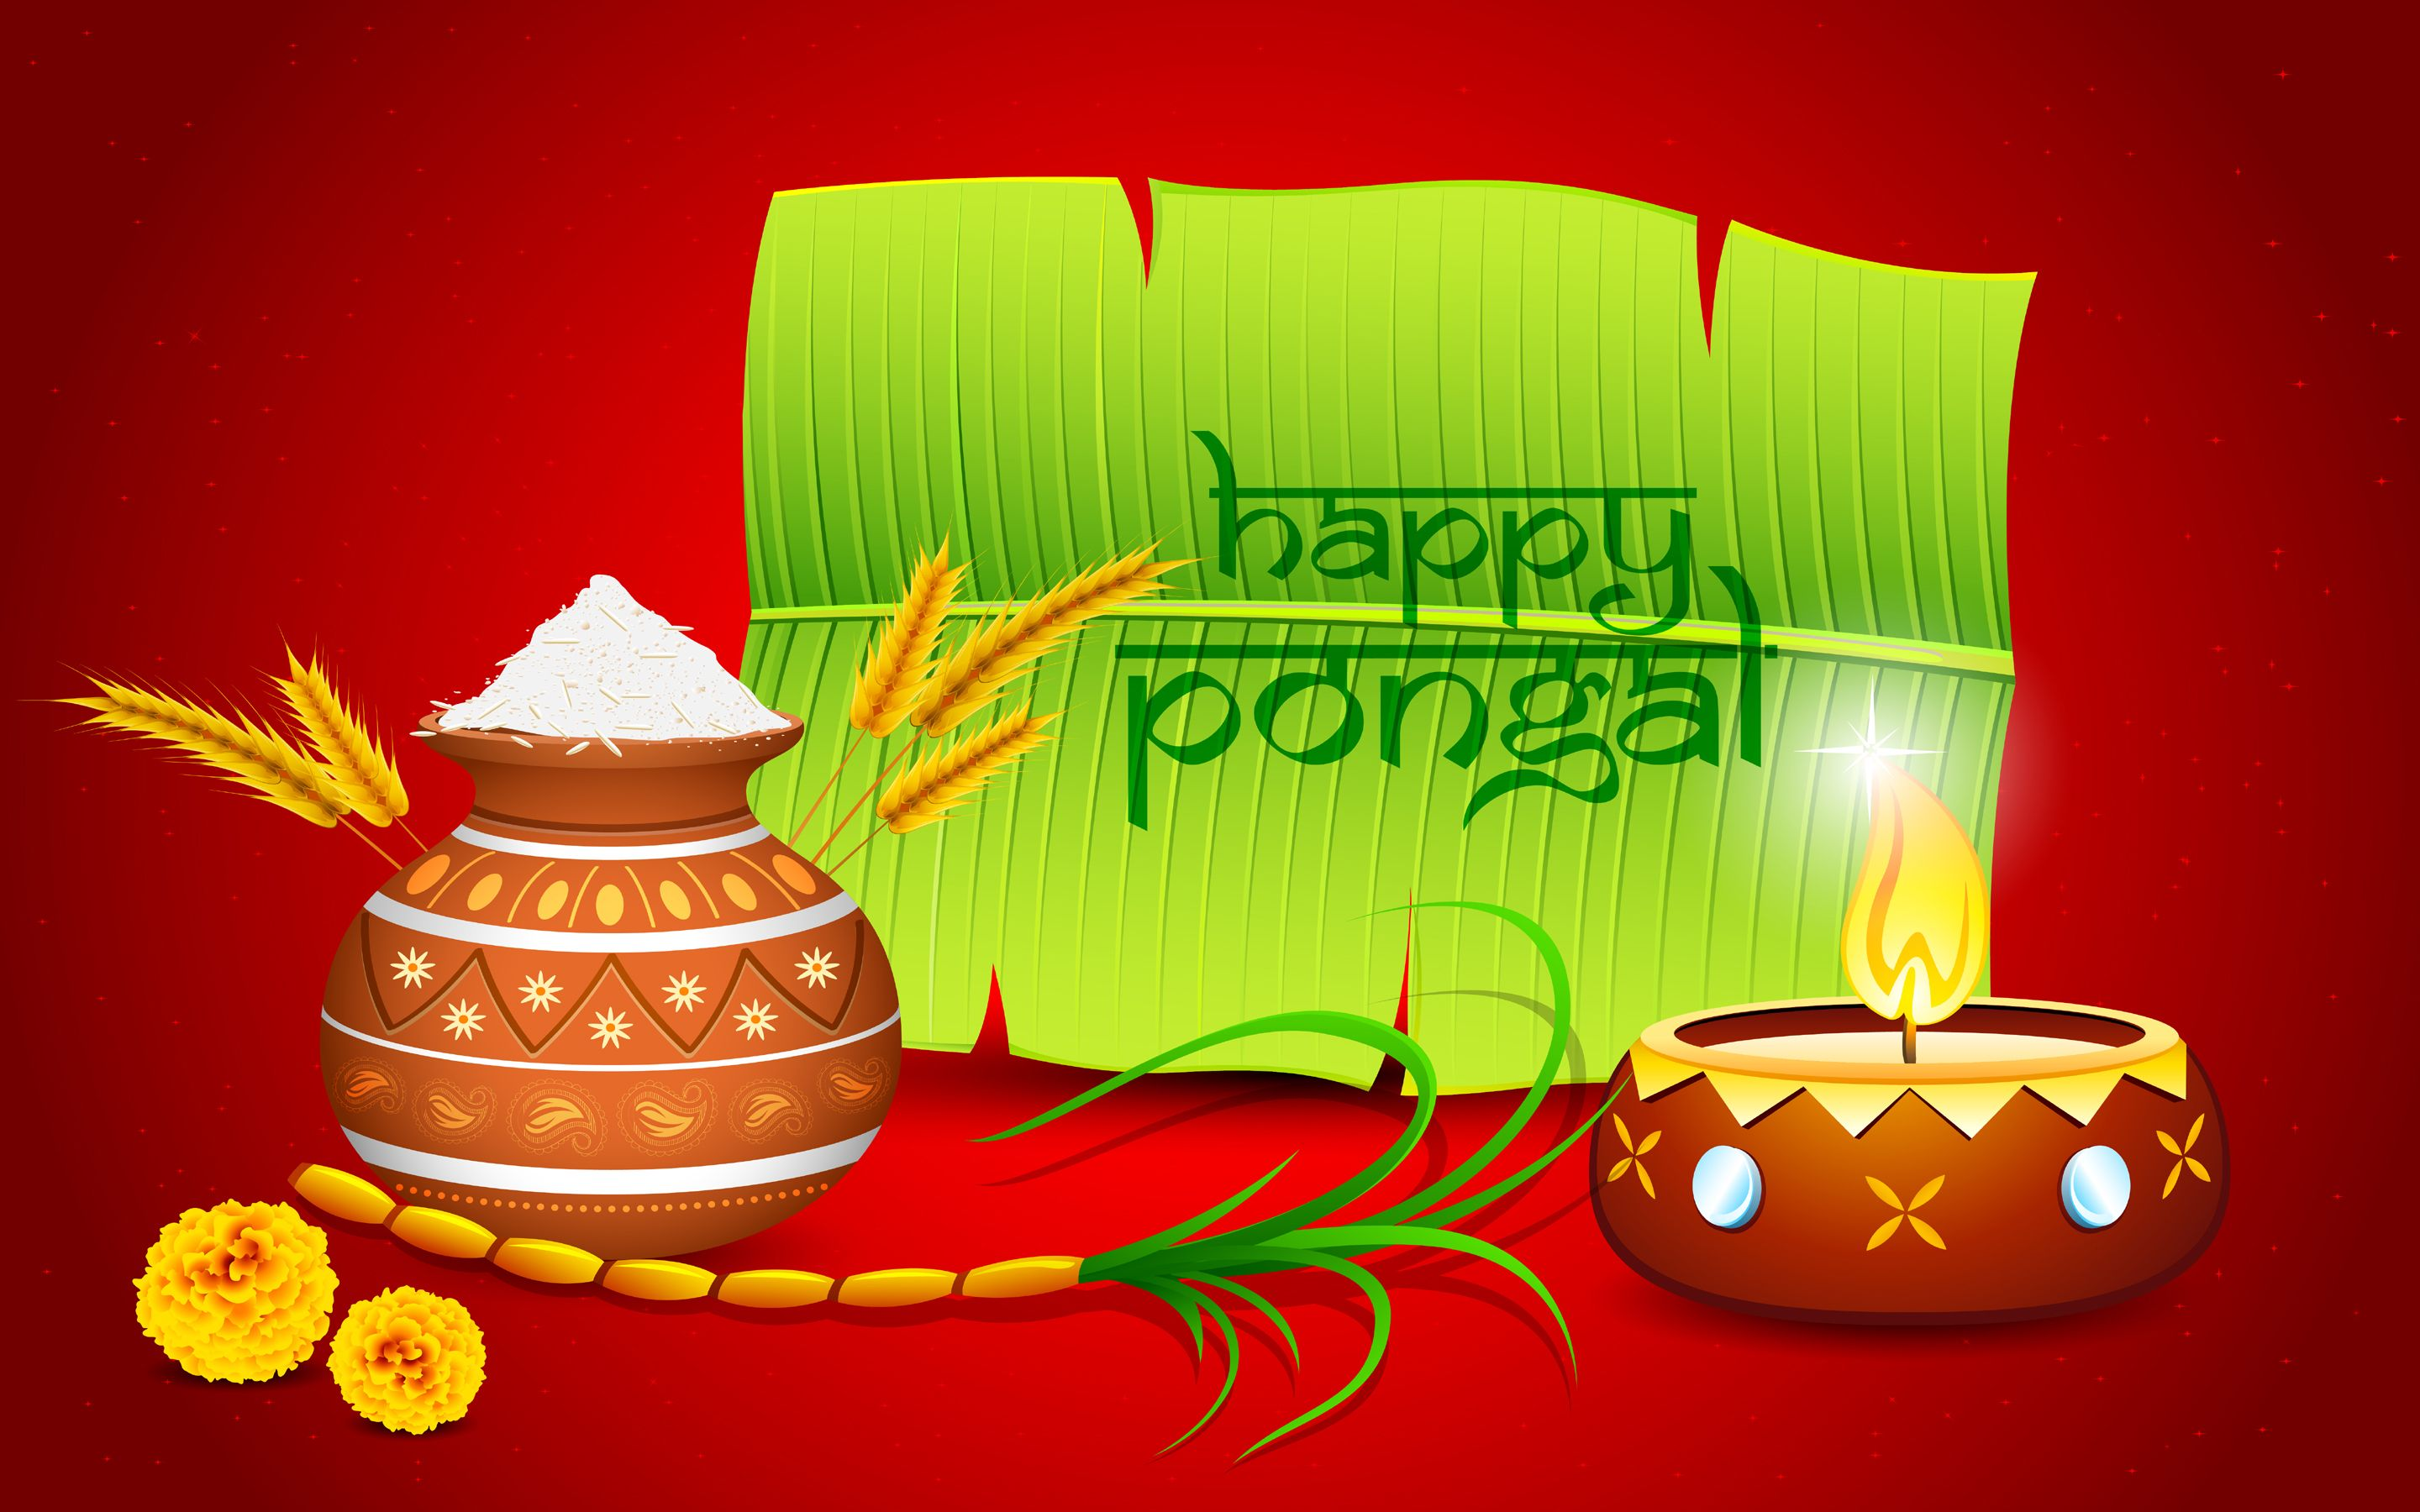 Happy Pongal Wallpapers Pictures Images - Free Download1